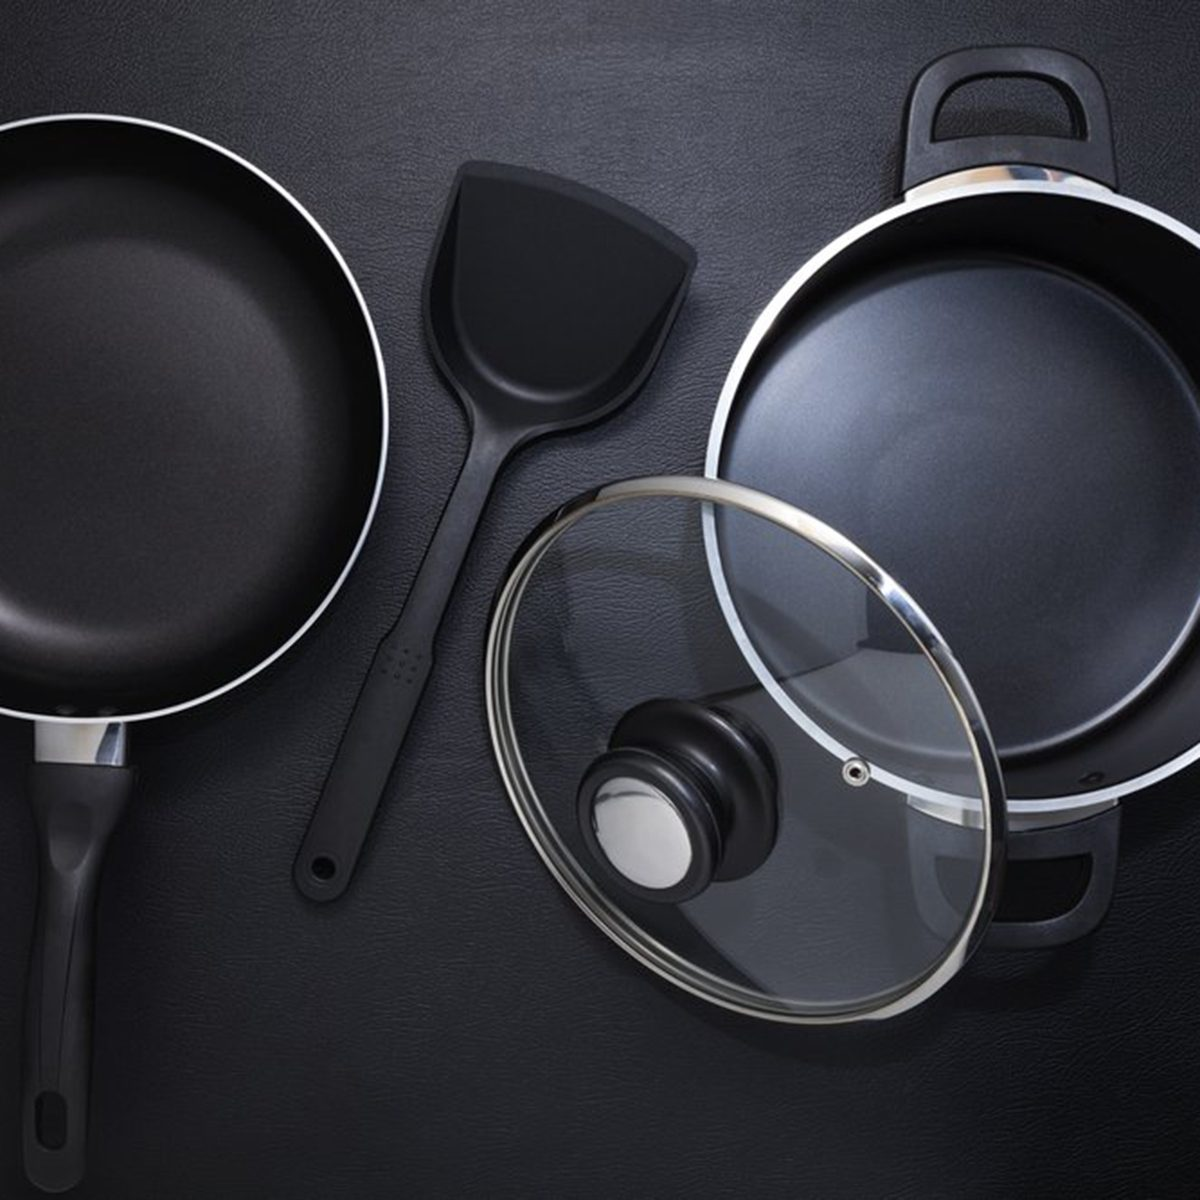 Cookware pots and pans